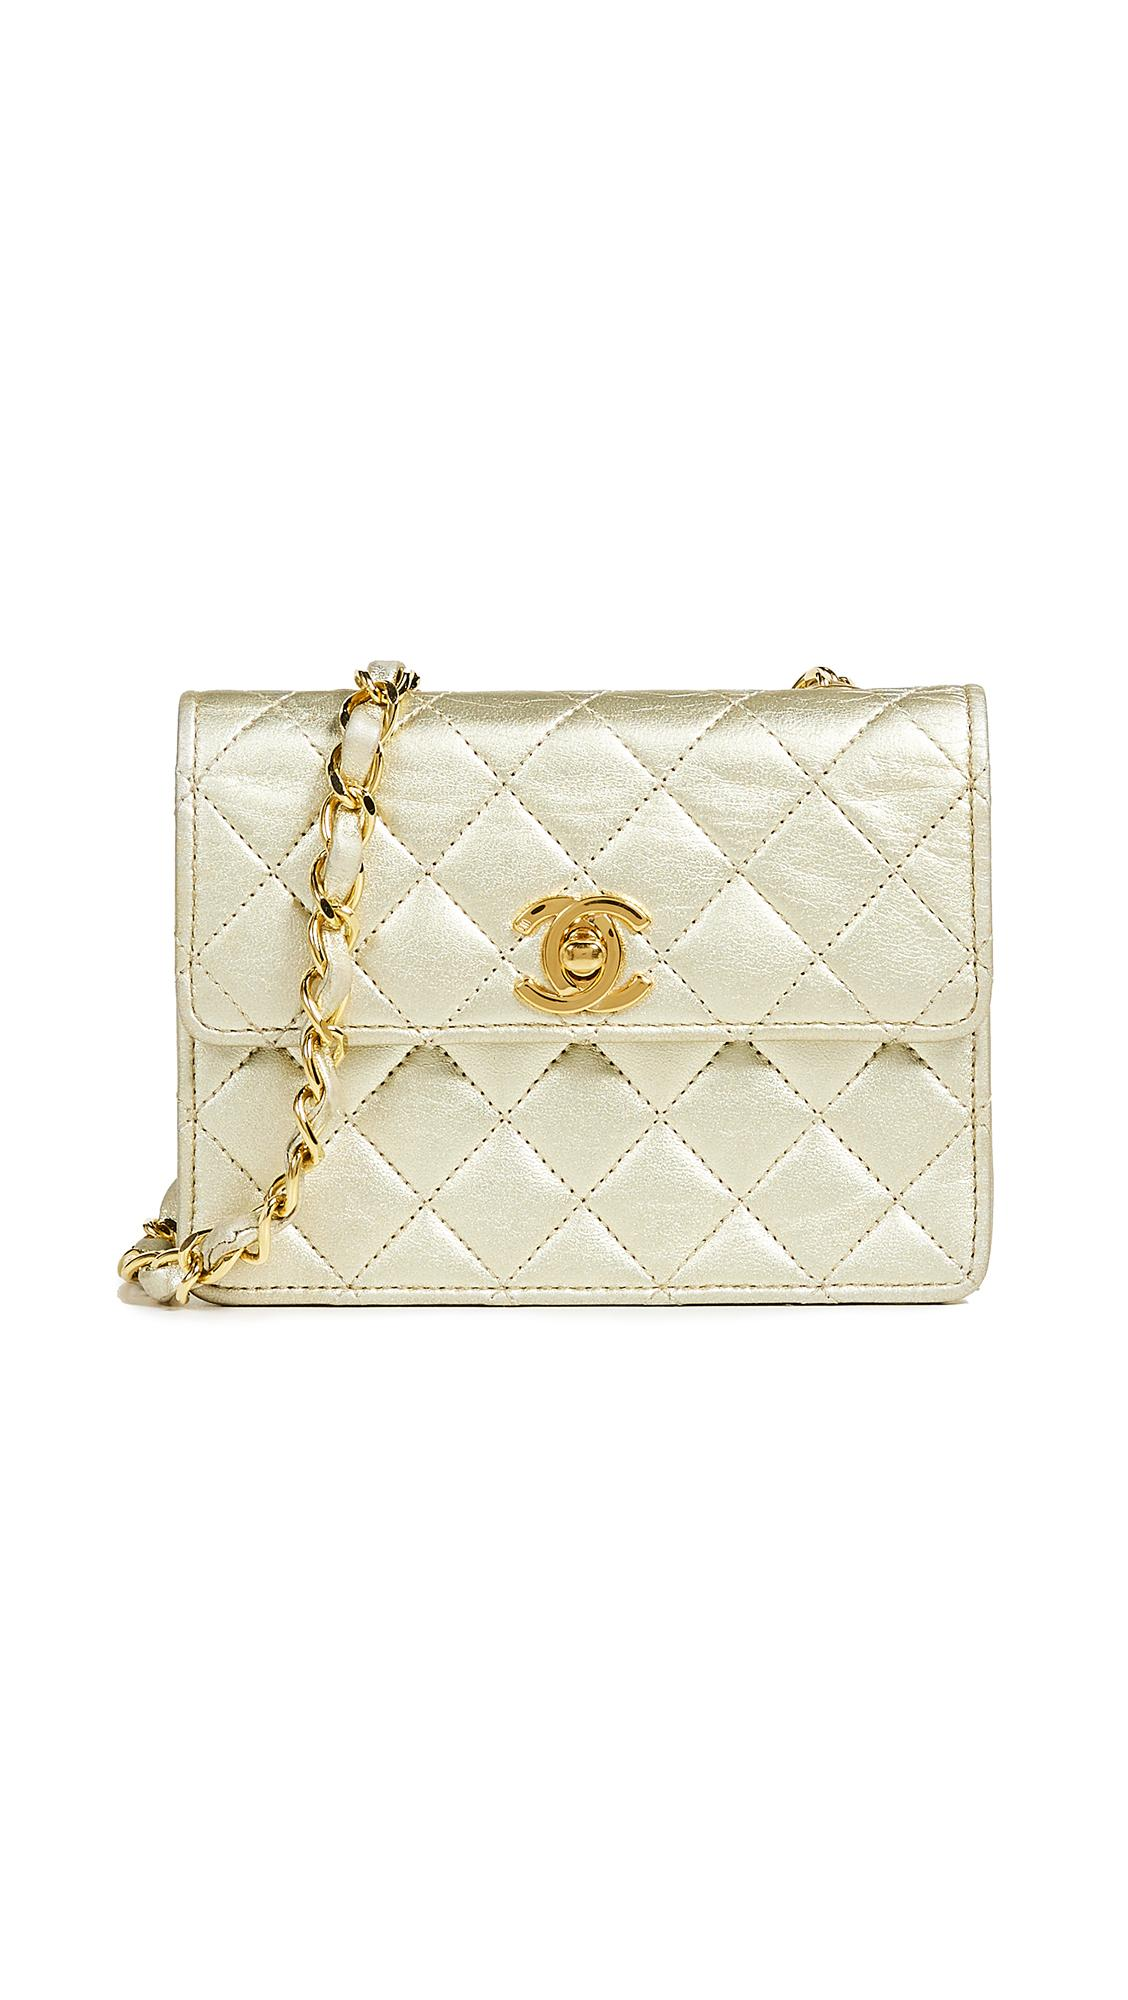 715297e4cd02 What Goes Around Comes Around Chanel Half Flap Micro Mini Bag In Gold